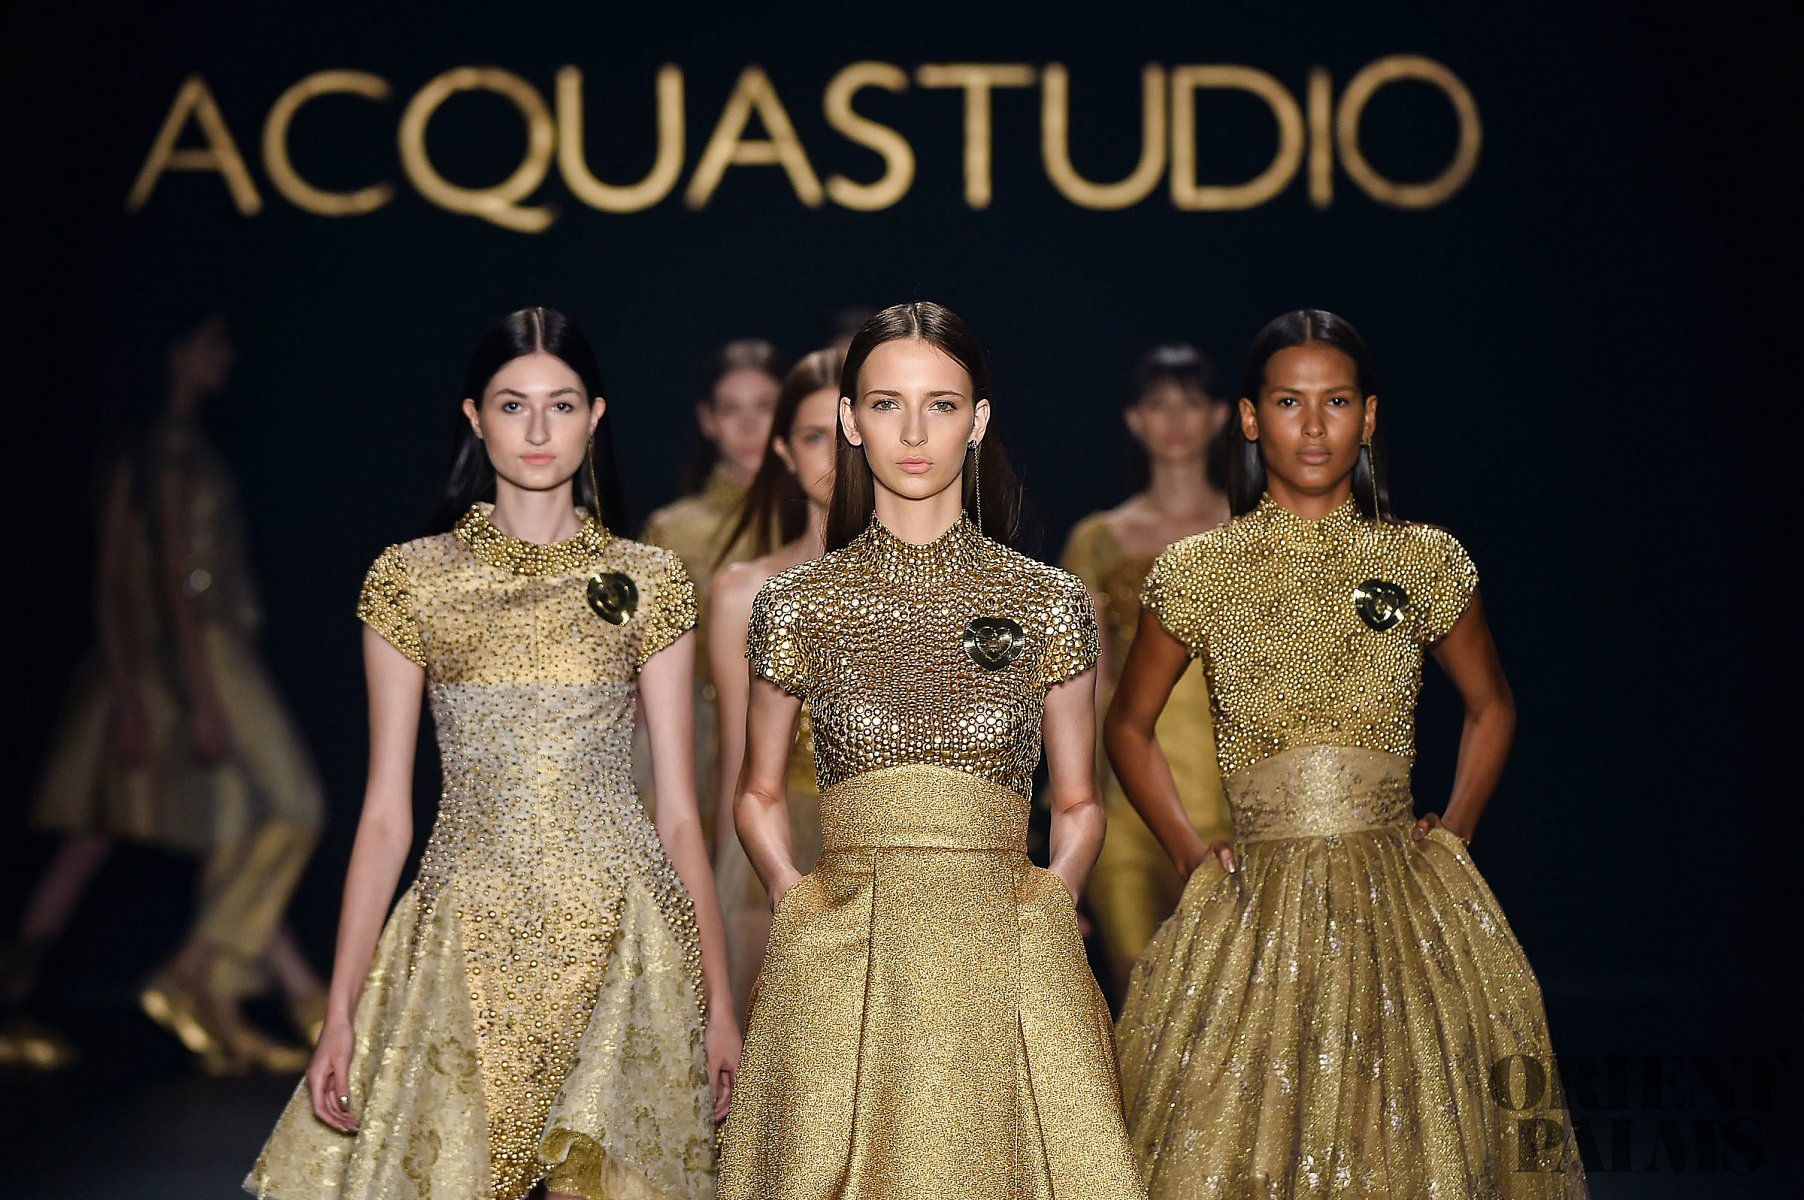 Acquastudio Herfst/Winter 2015-2016 - Confectie - 6